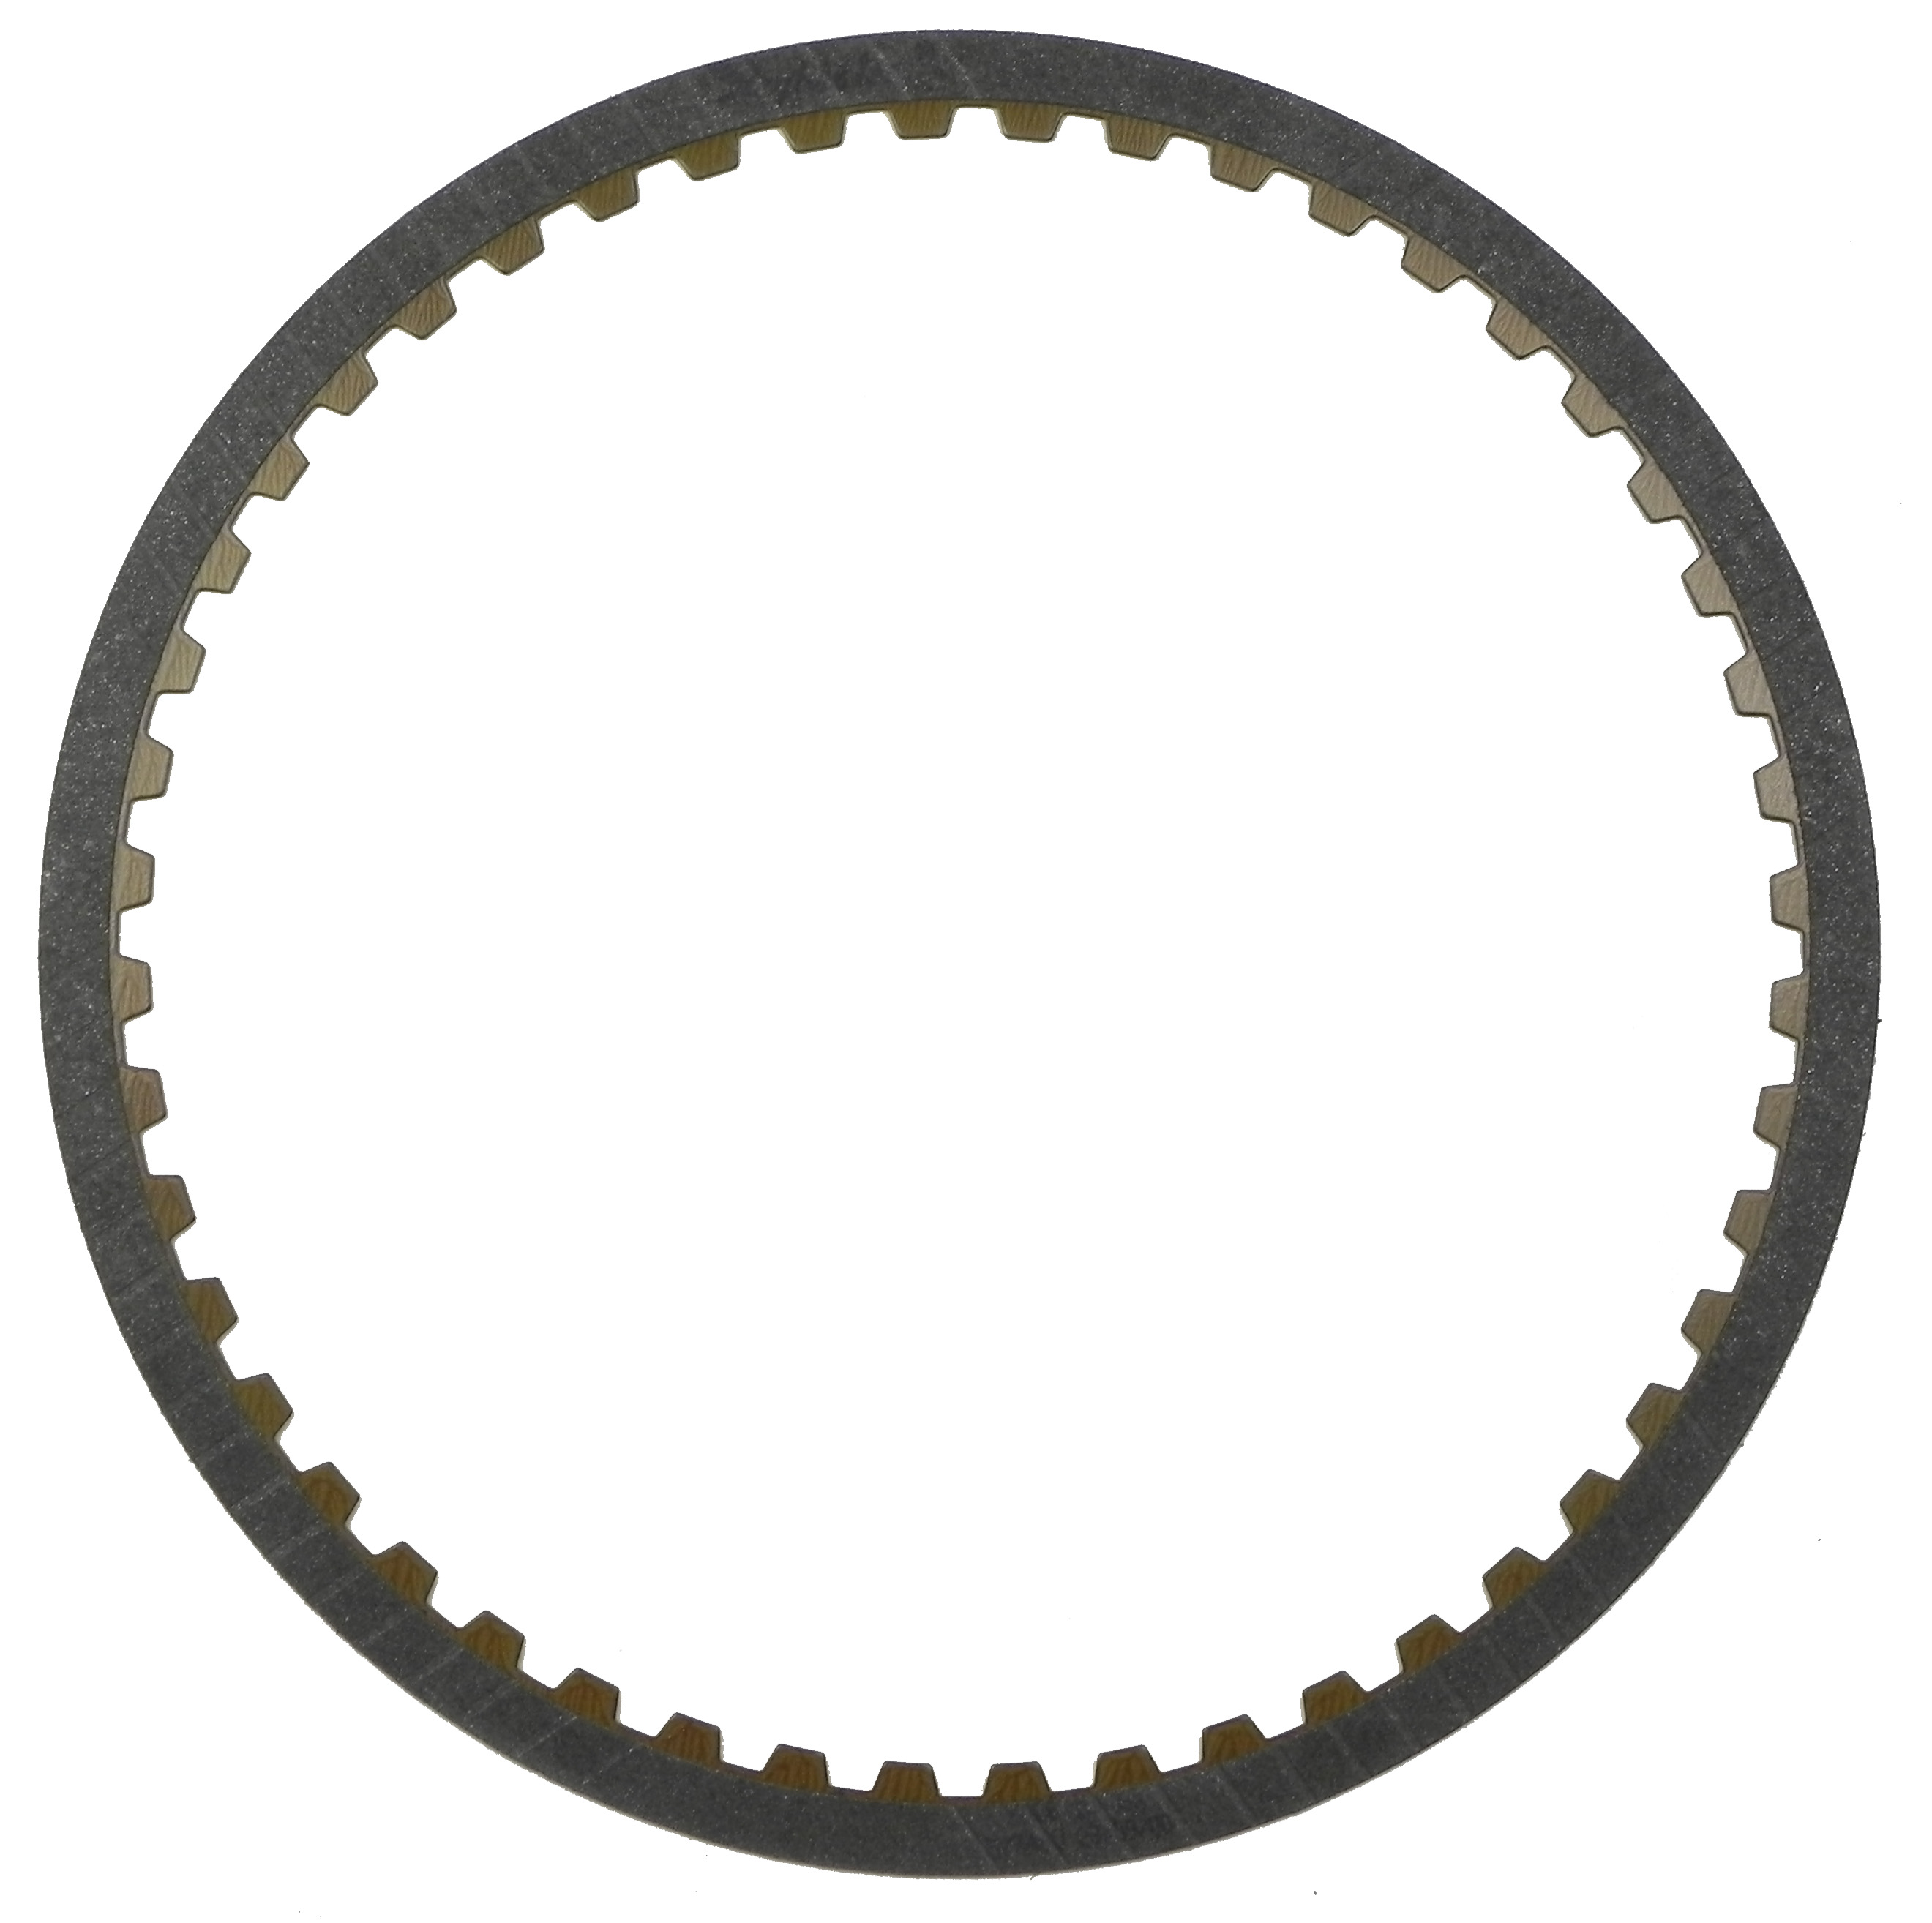 R573480 | 1990-ON Friction Clutch Plate High Energy Low High Energy